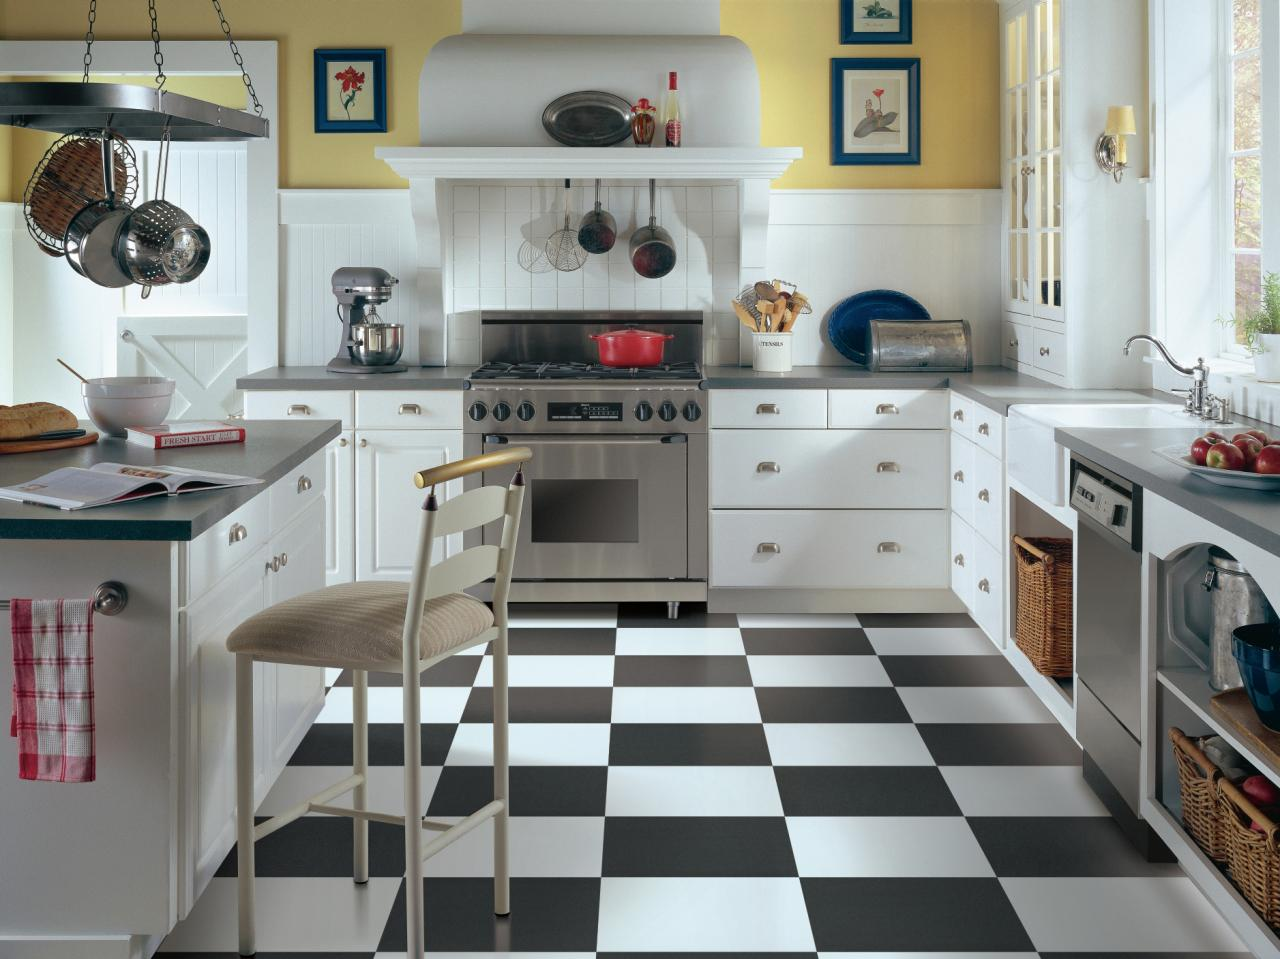 Kitchen Floor Buying Guide | HGTV